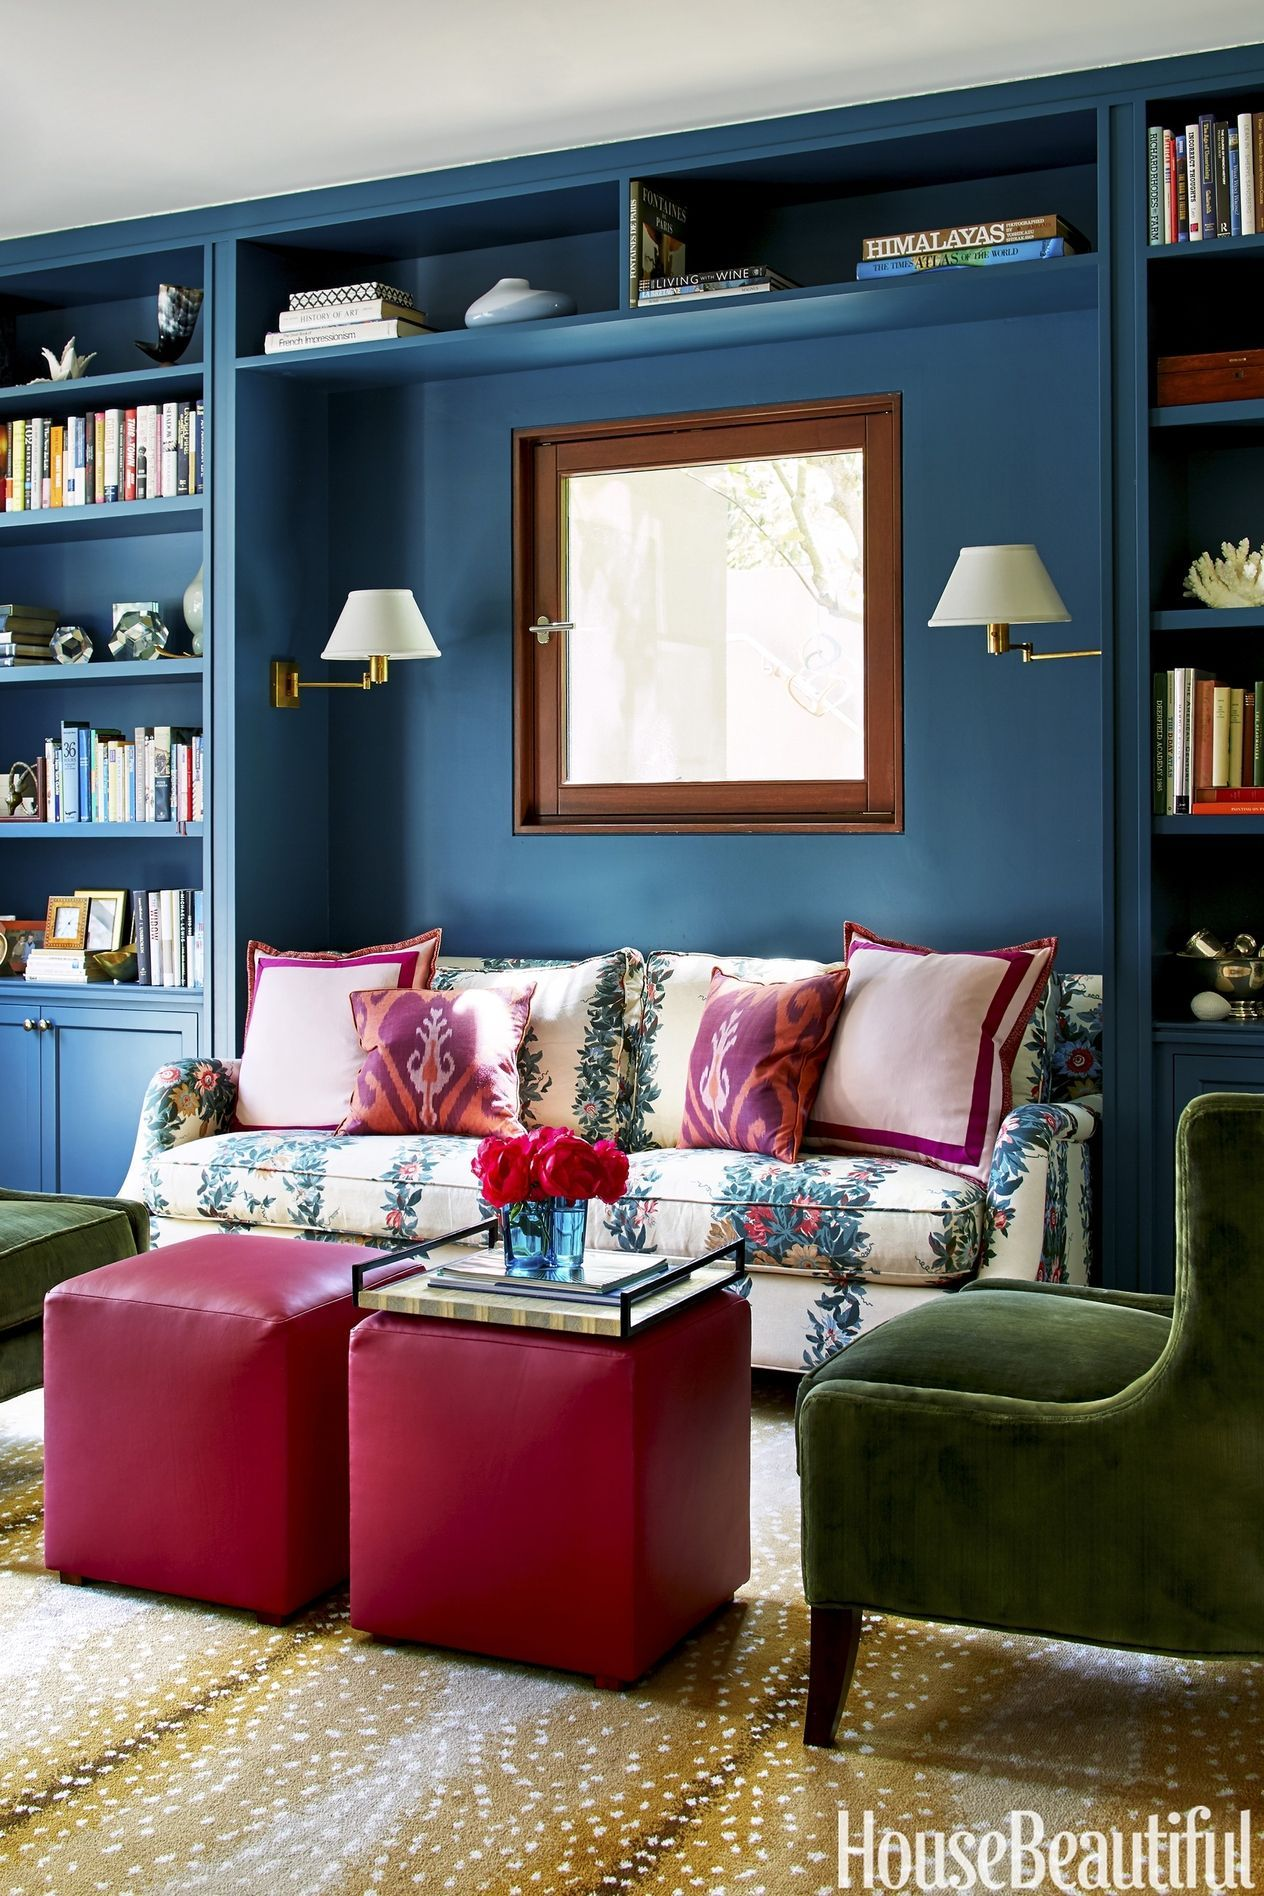 Futuristic Living Room Ideas For Small Space Style